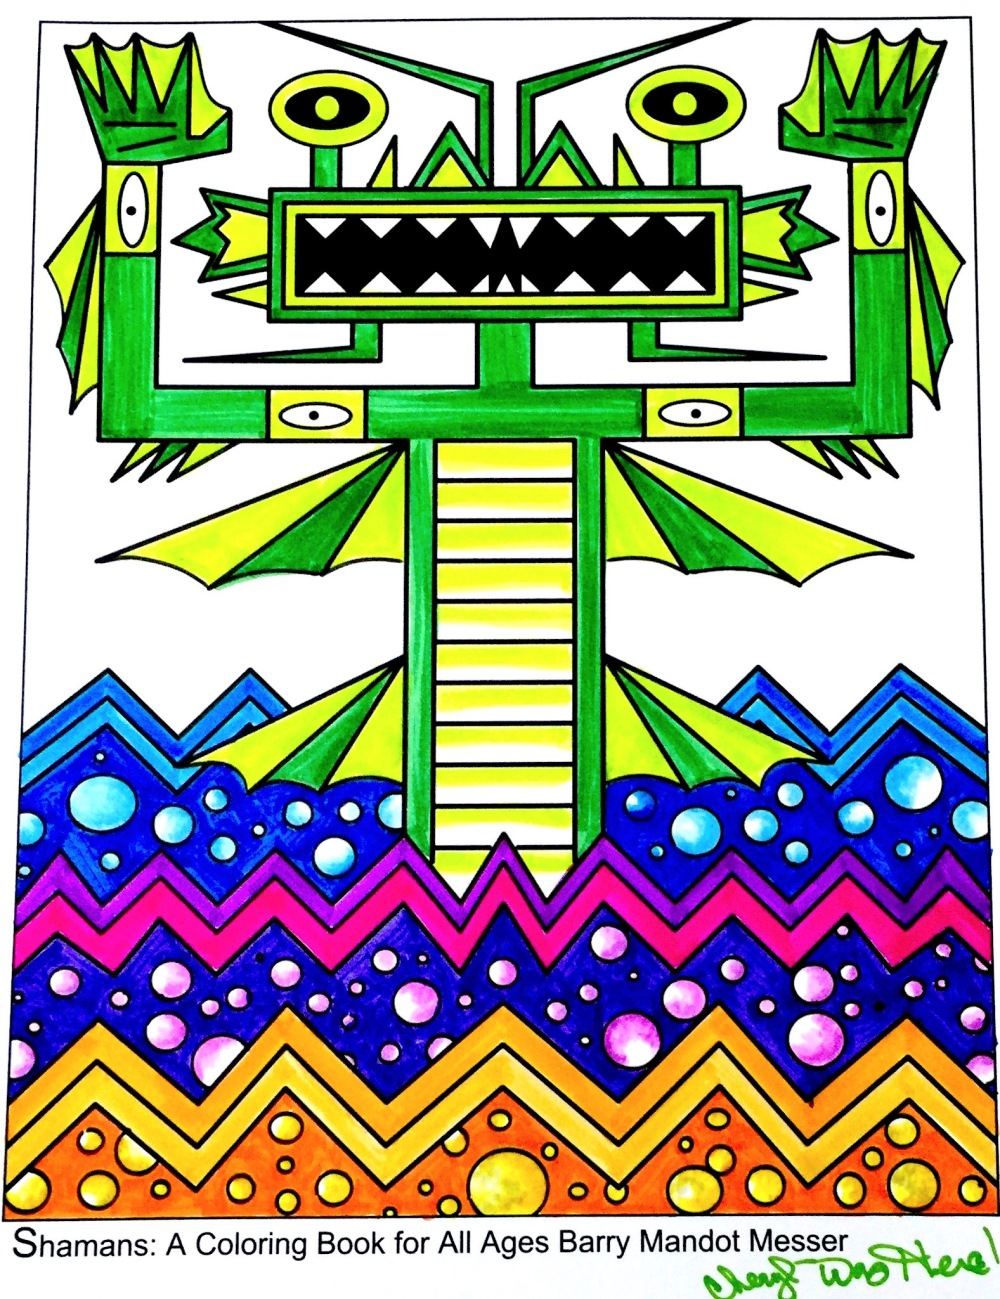 Coloring Book: Shamans by Barry Mandot Messer